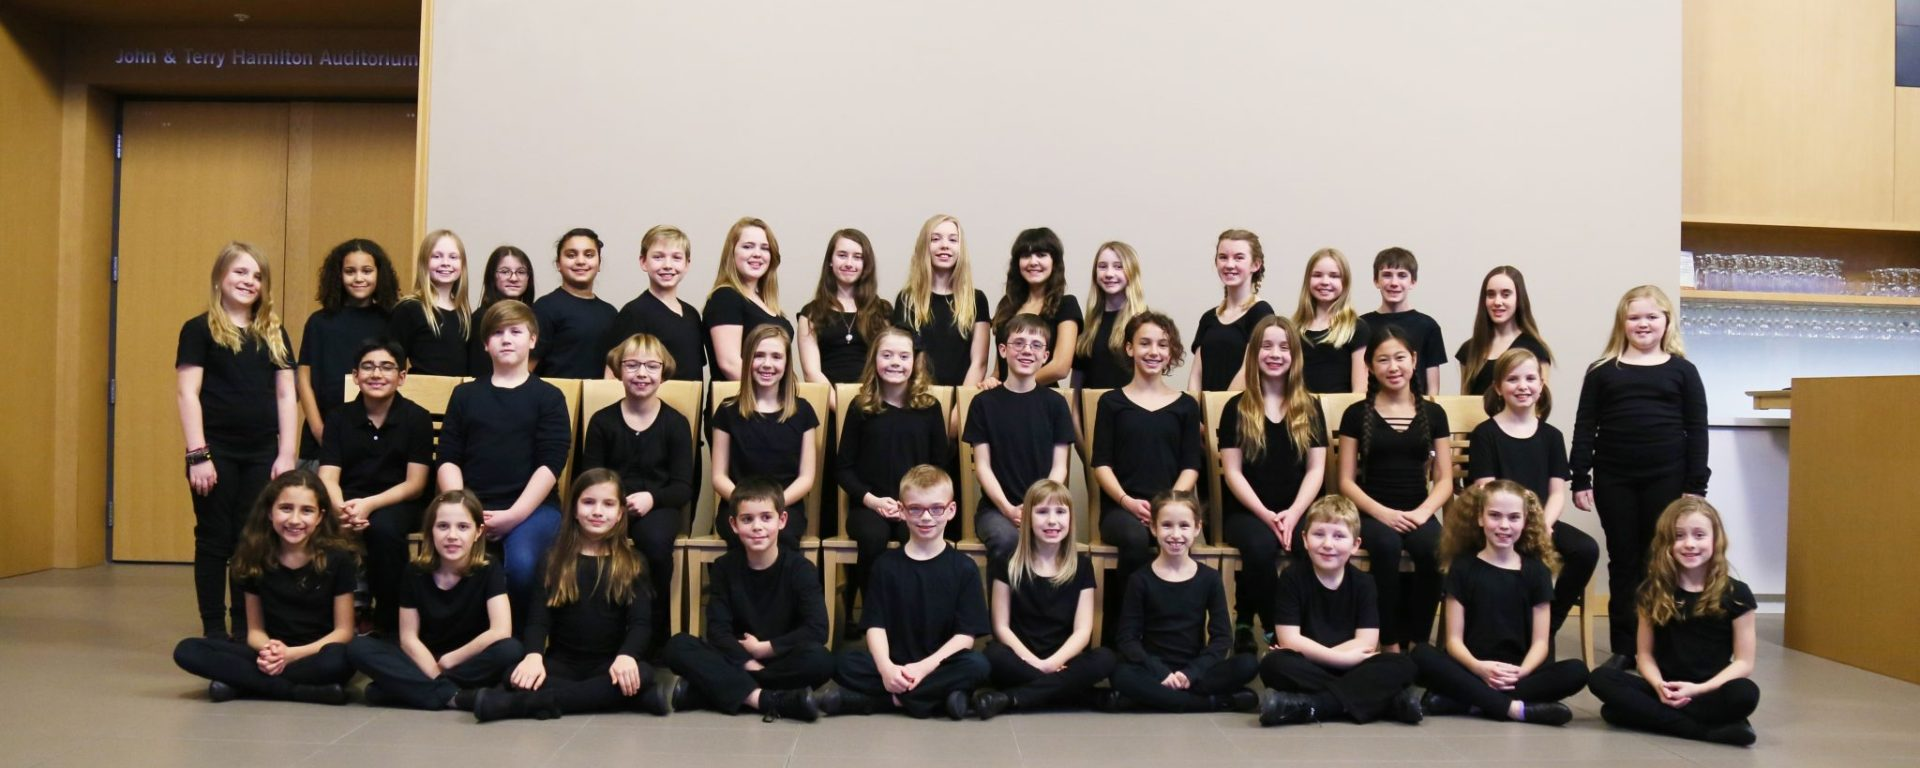 Children's Chorus announced for Technicolor musical at Dunfield Theatre Cambridge